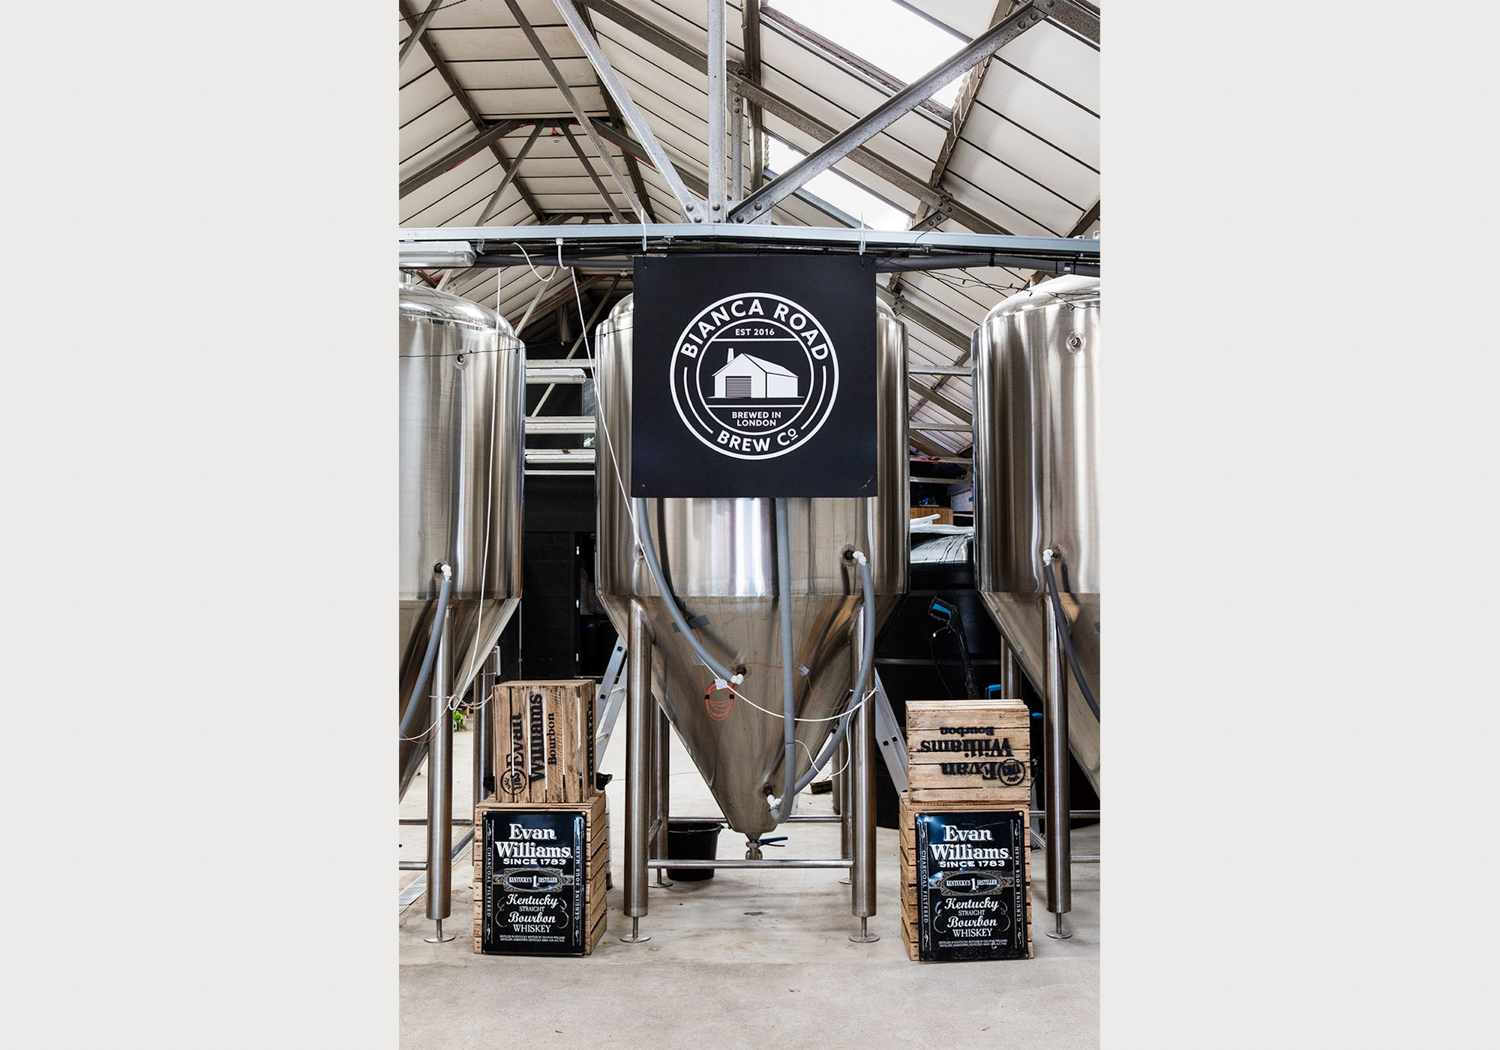 Bianca Road Brewery – Image by Alexander Christie-24